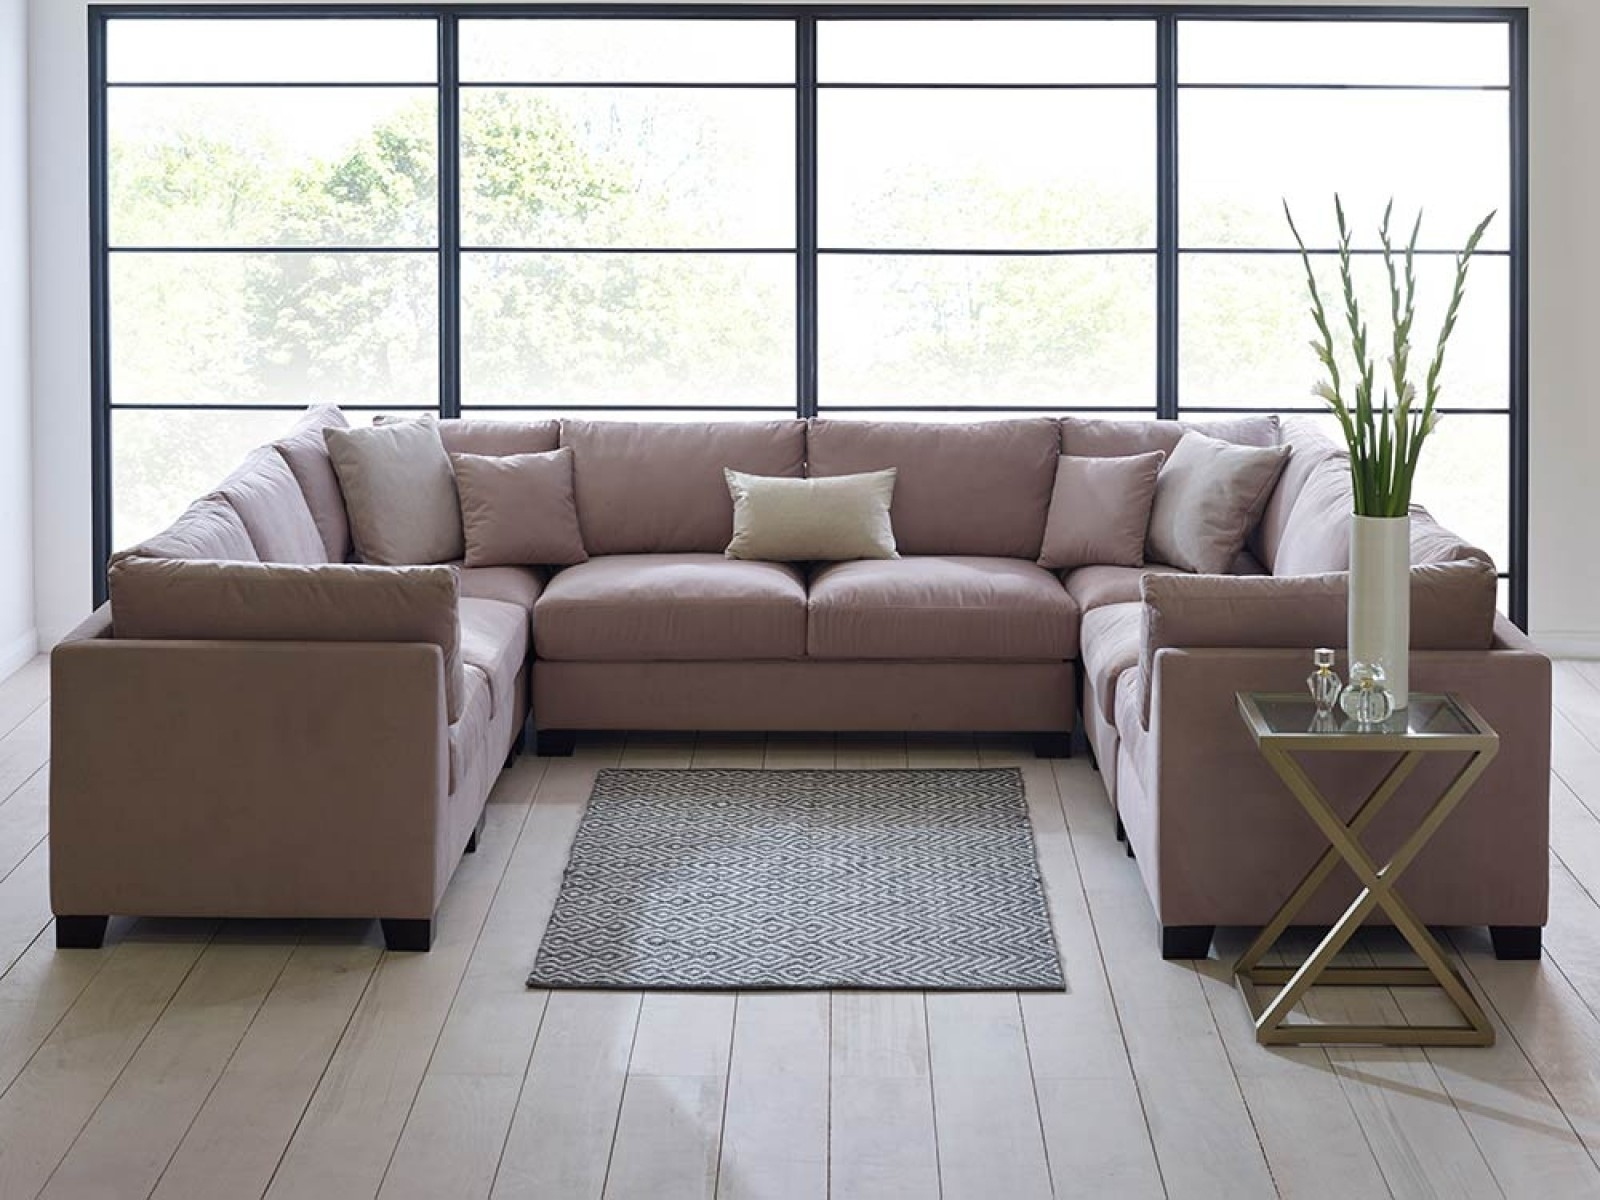 Best And Newest U Shaped Sofa – Google Search (View 3 of 15)